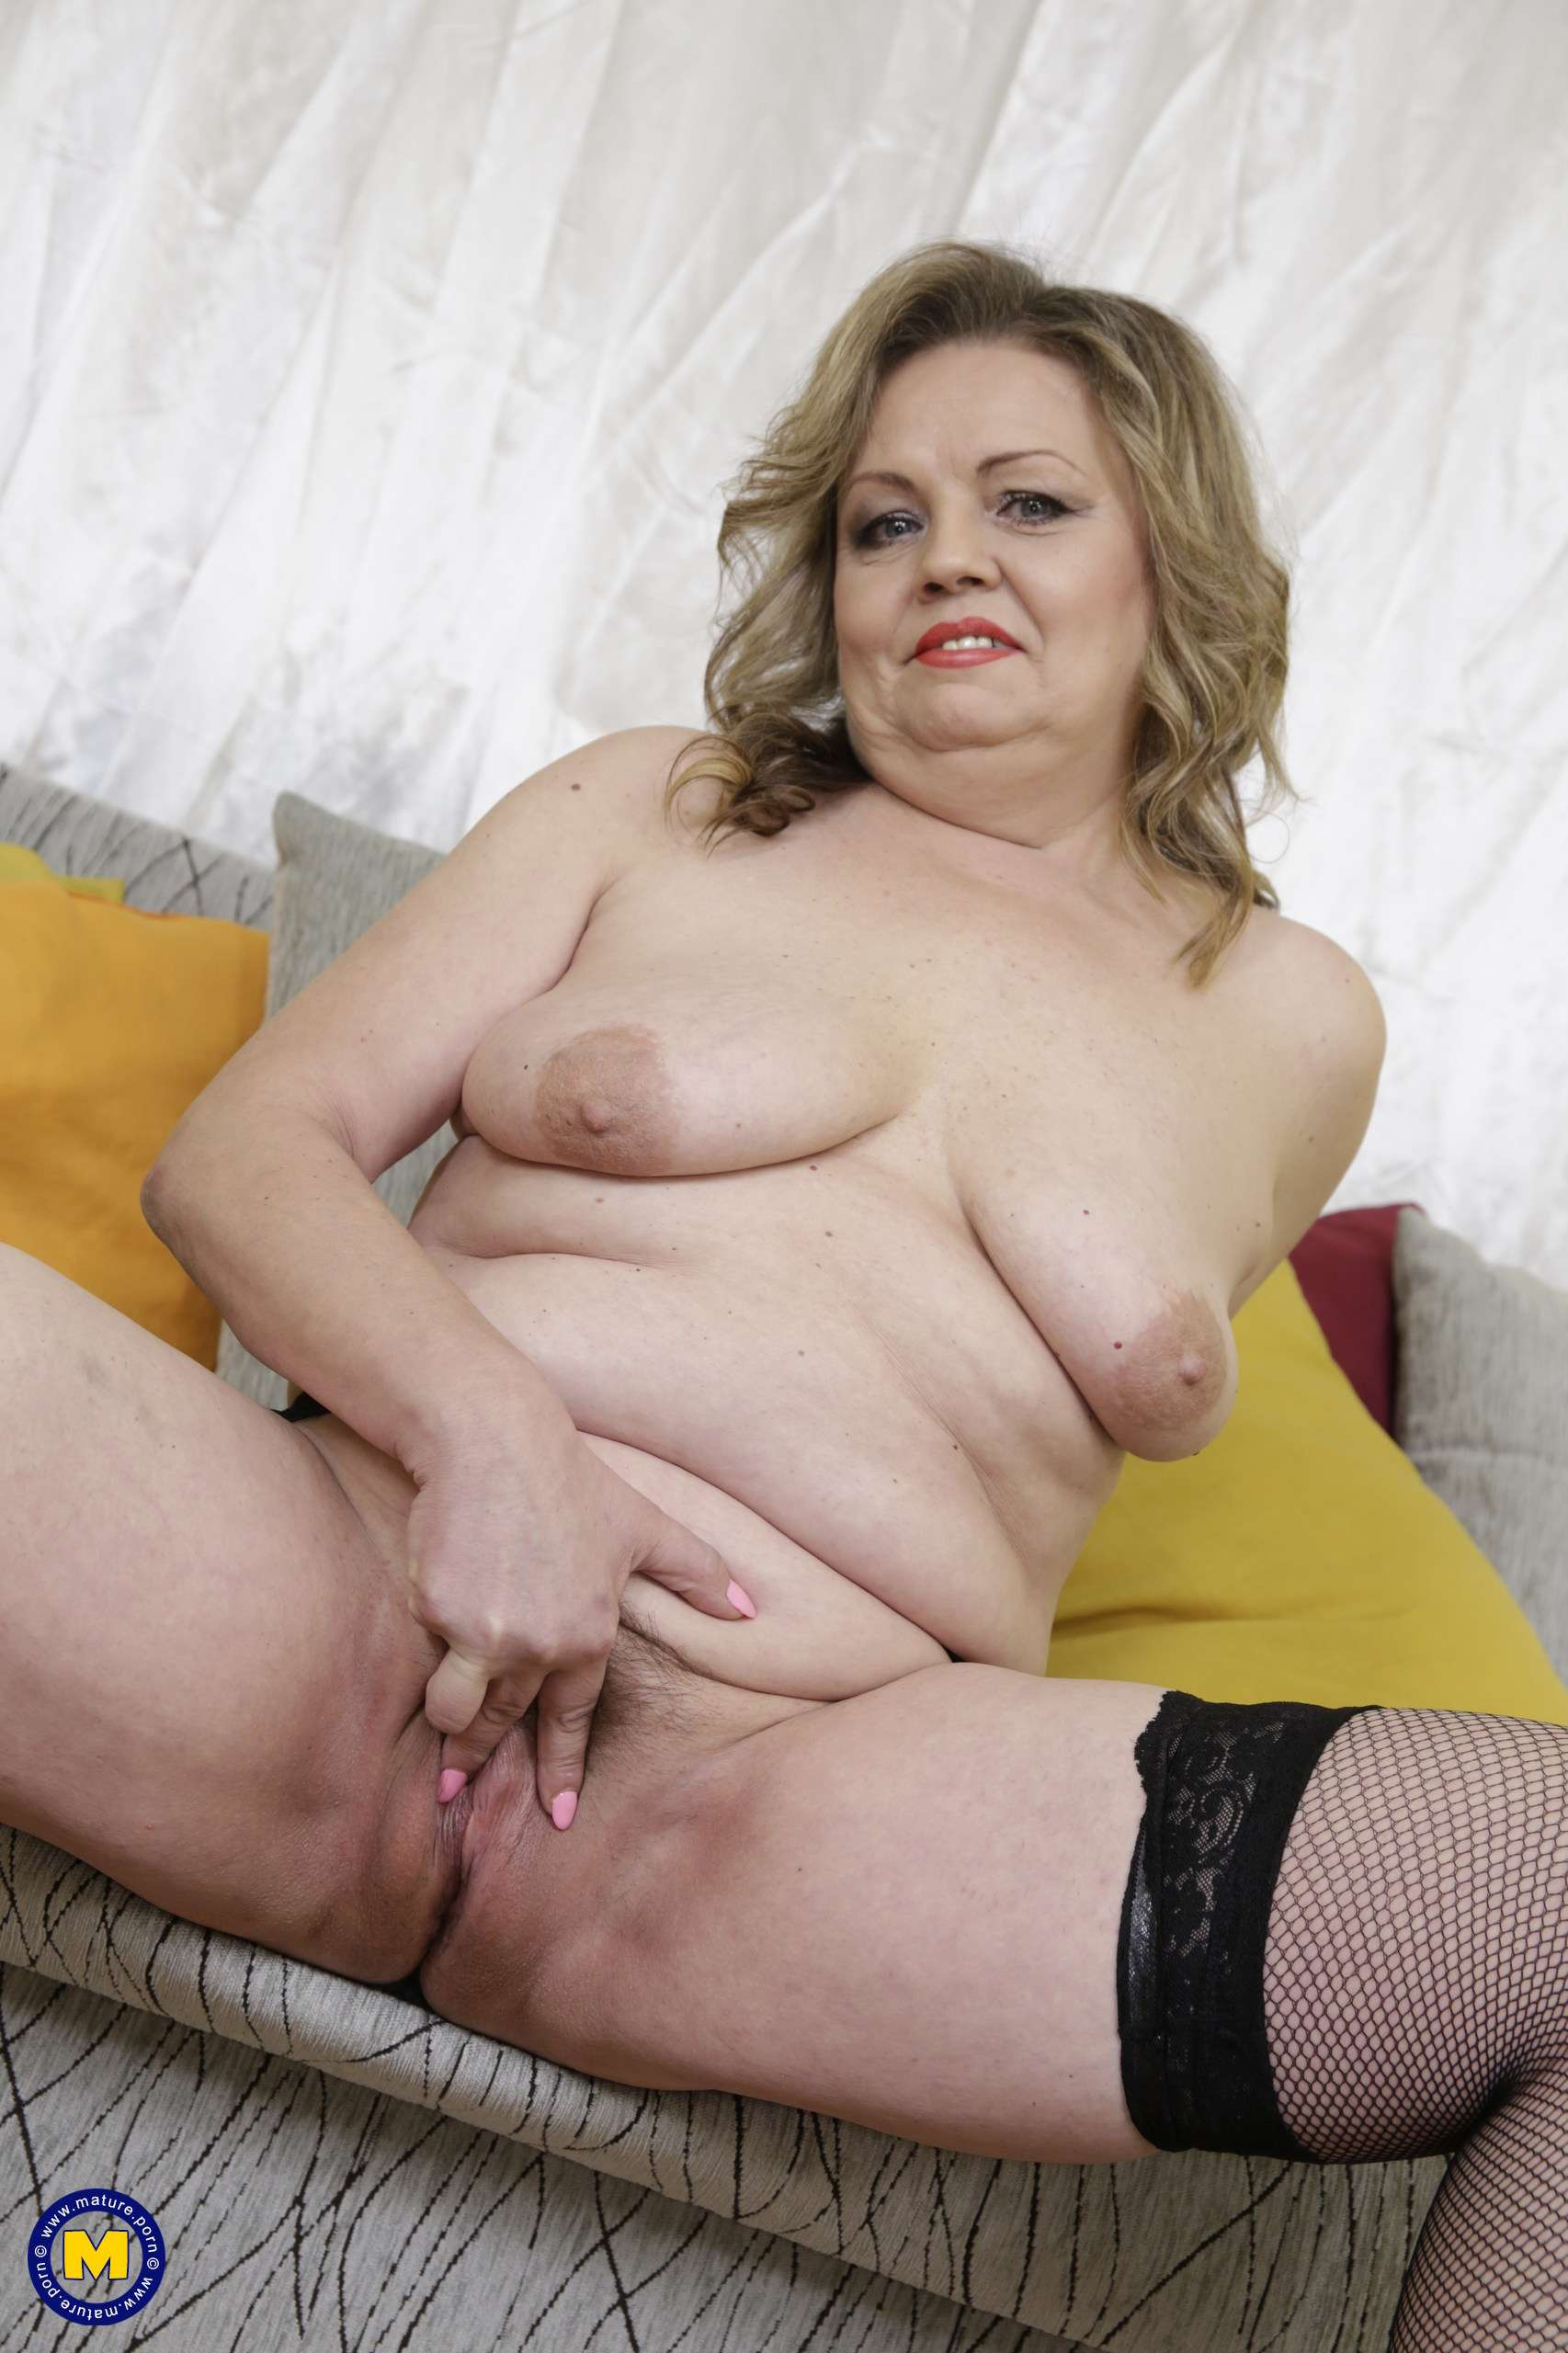 Naughty mature lady showing her unshaved pussy